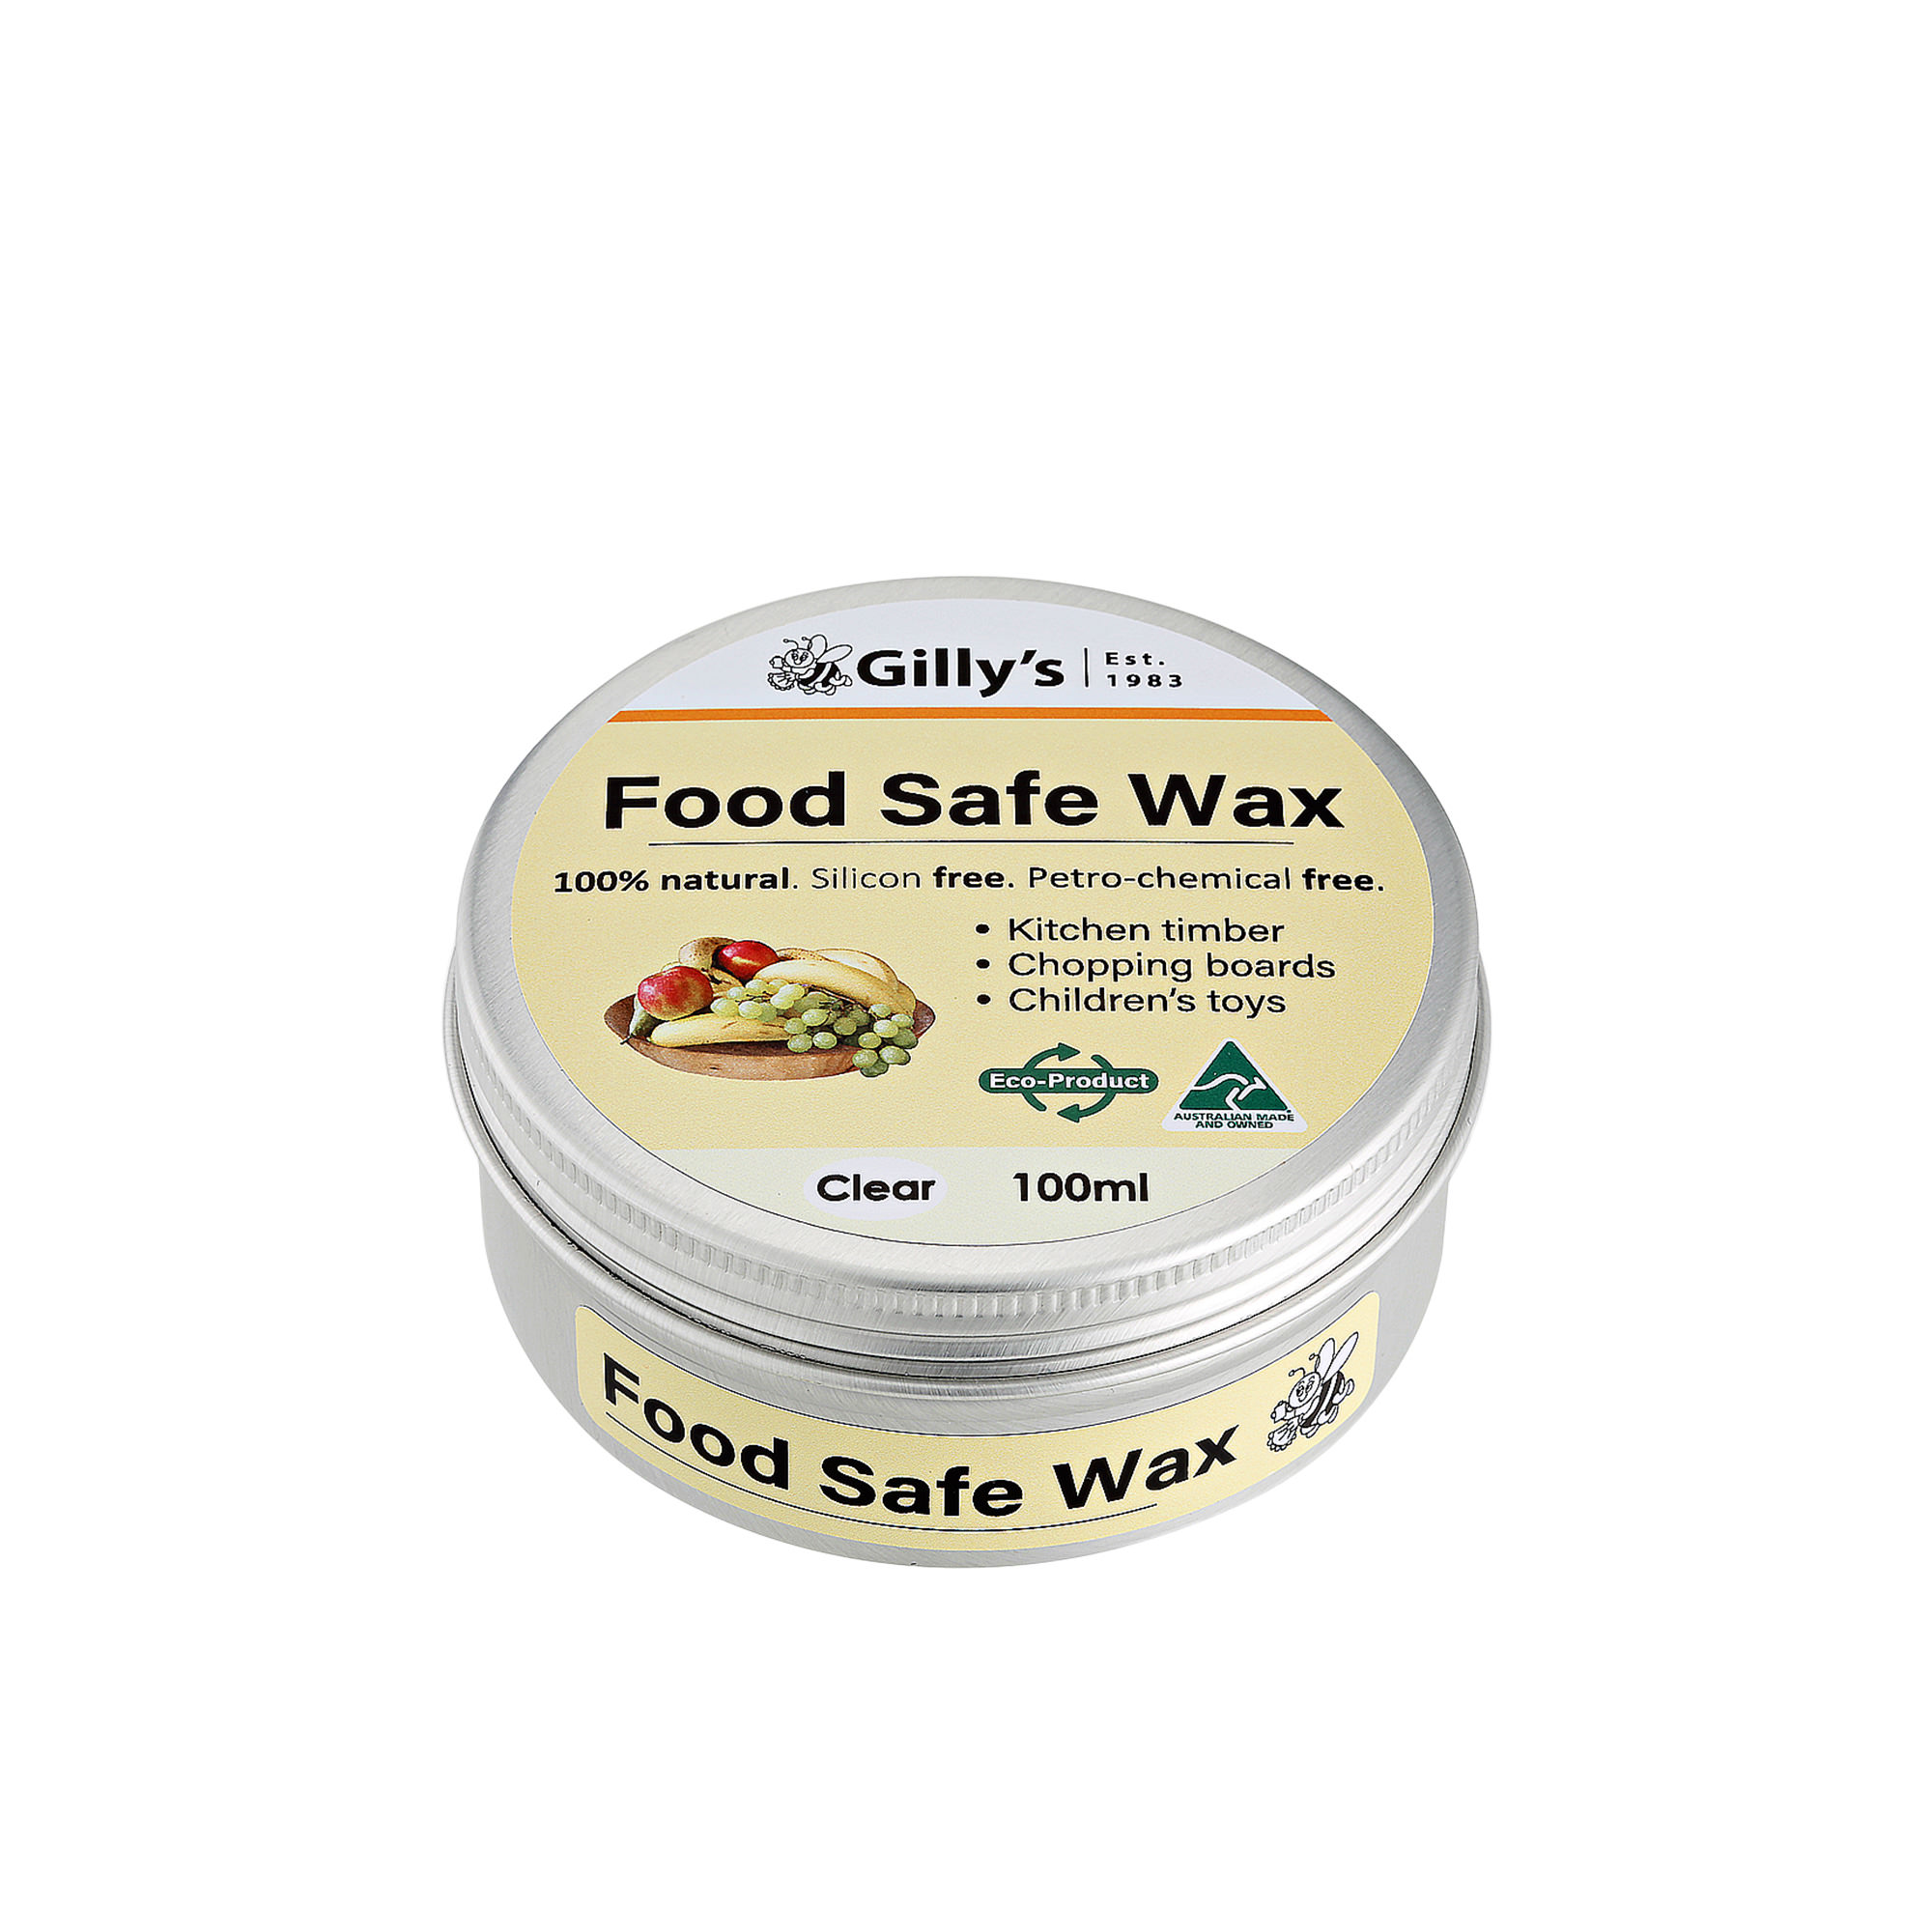 Gilly's Food Safe Wax 100ml